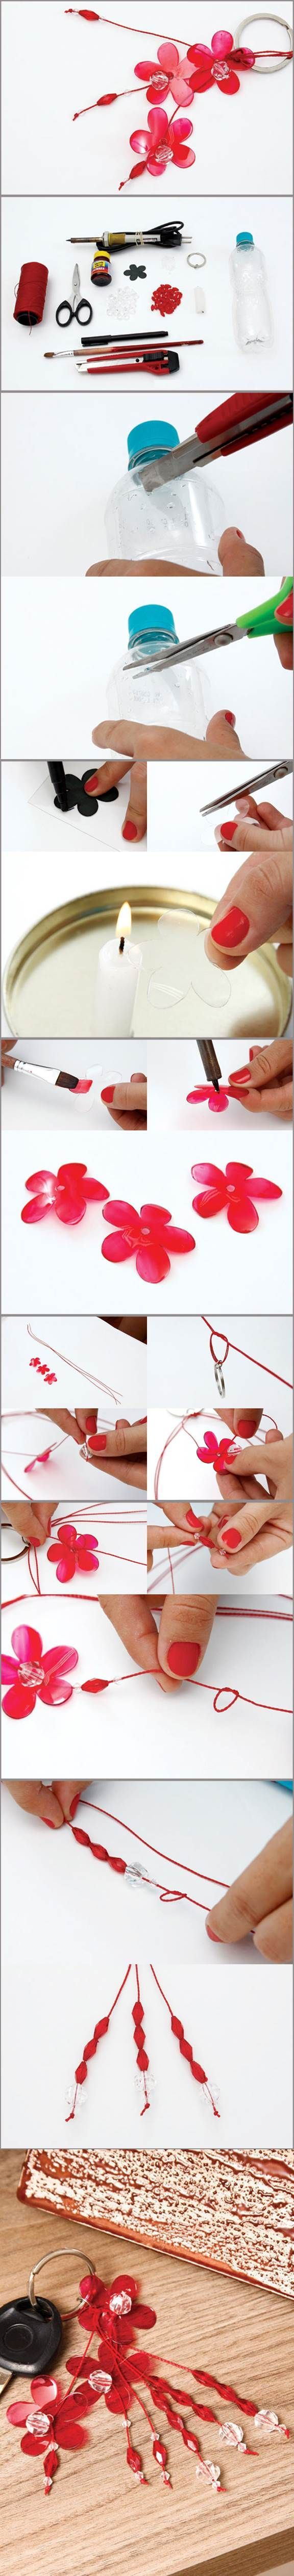 DIY Flower Key Chains from Plastic Bottle